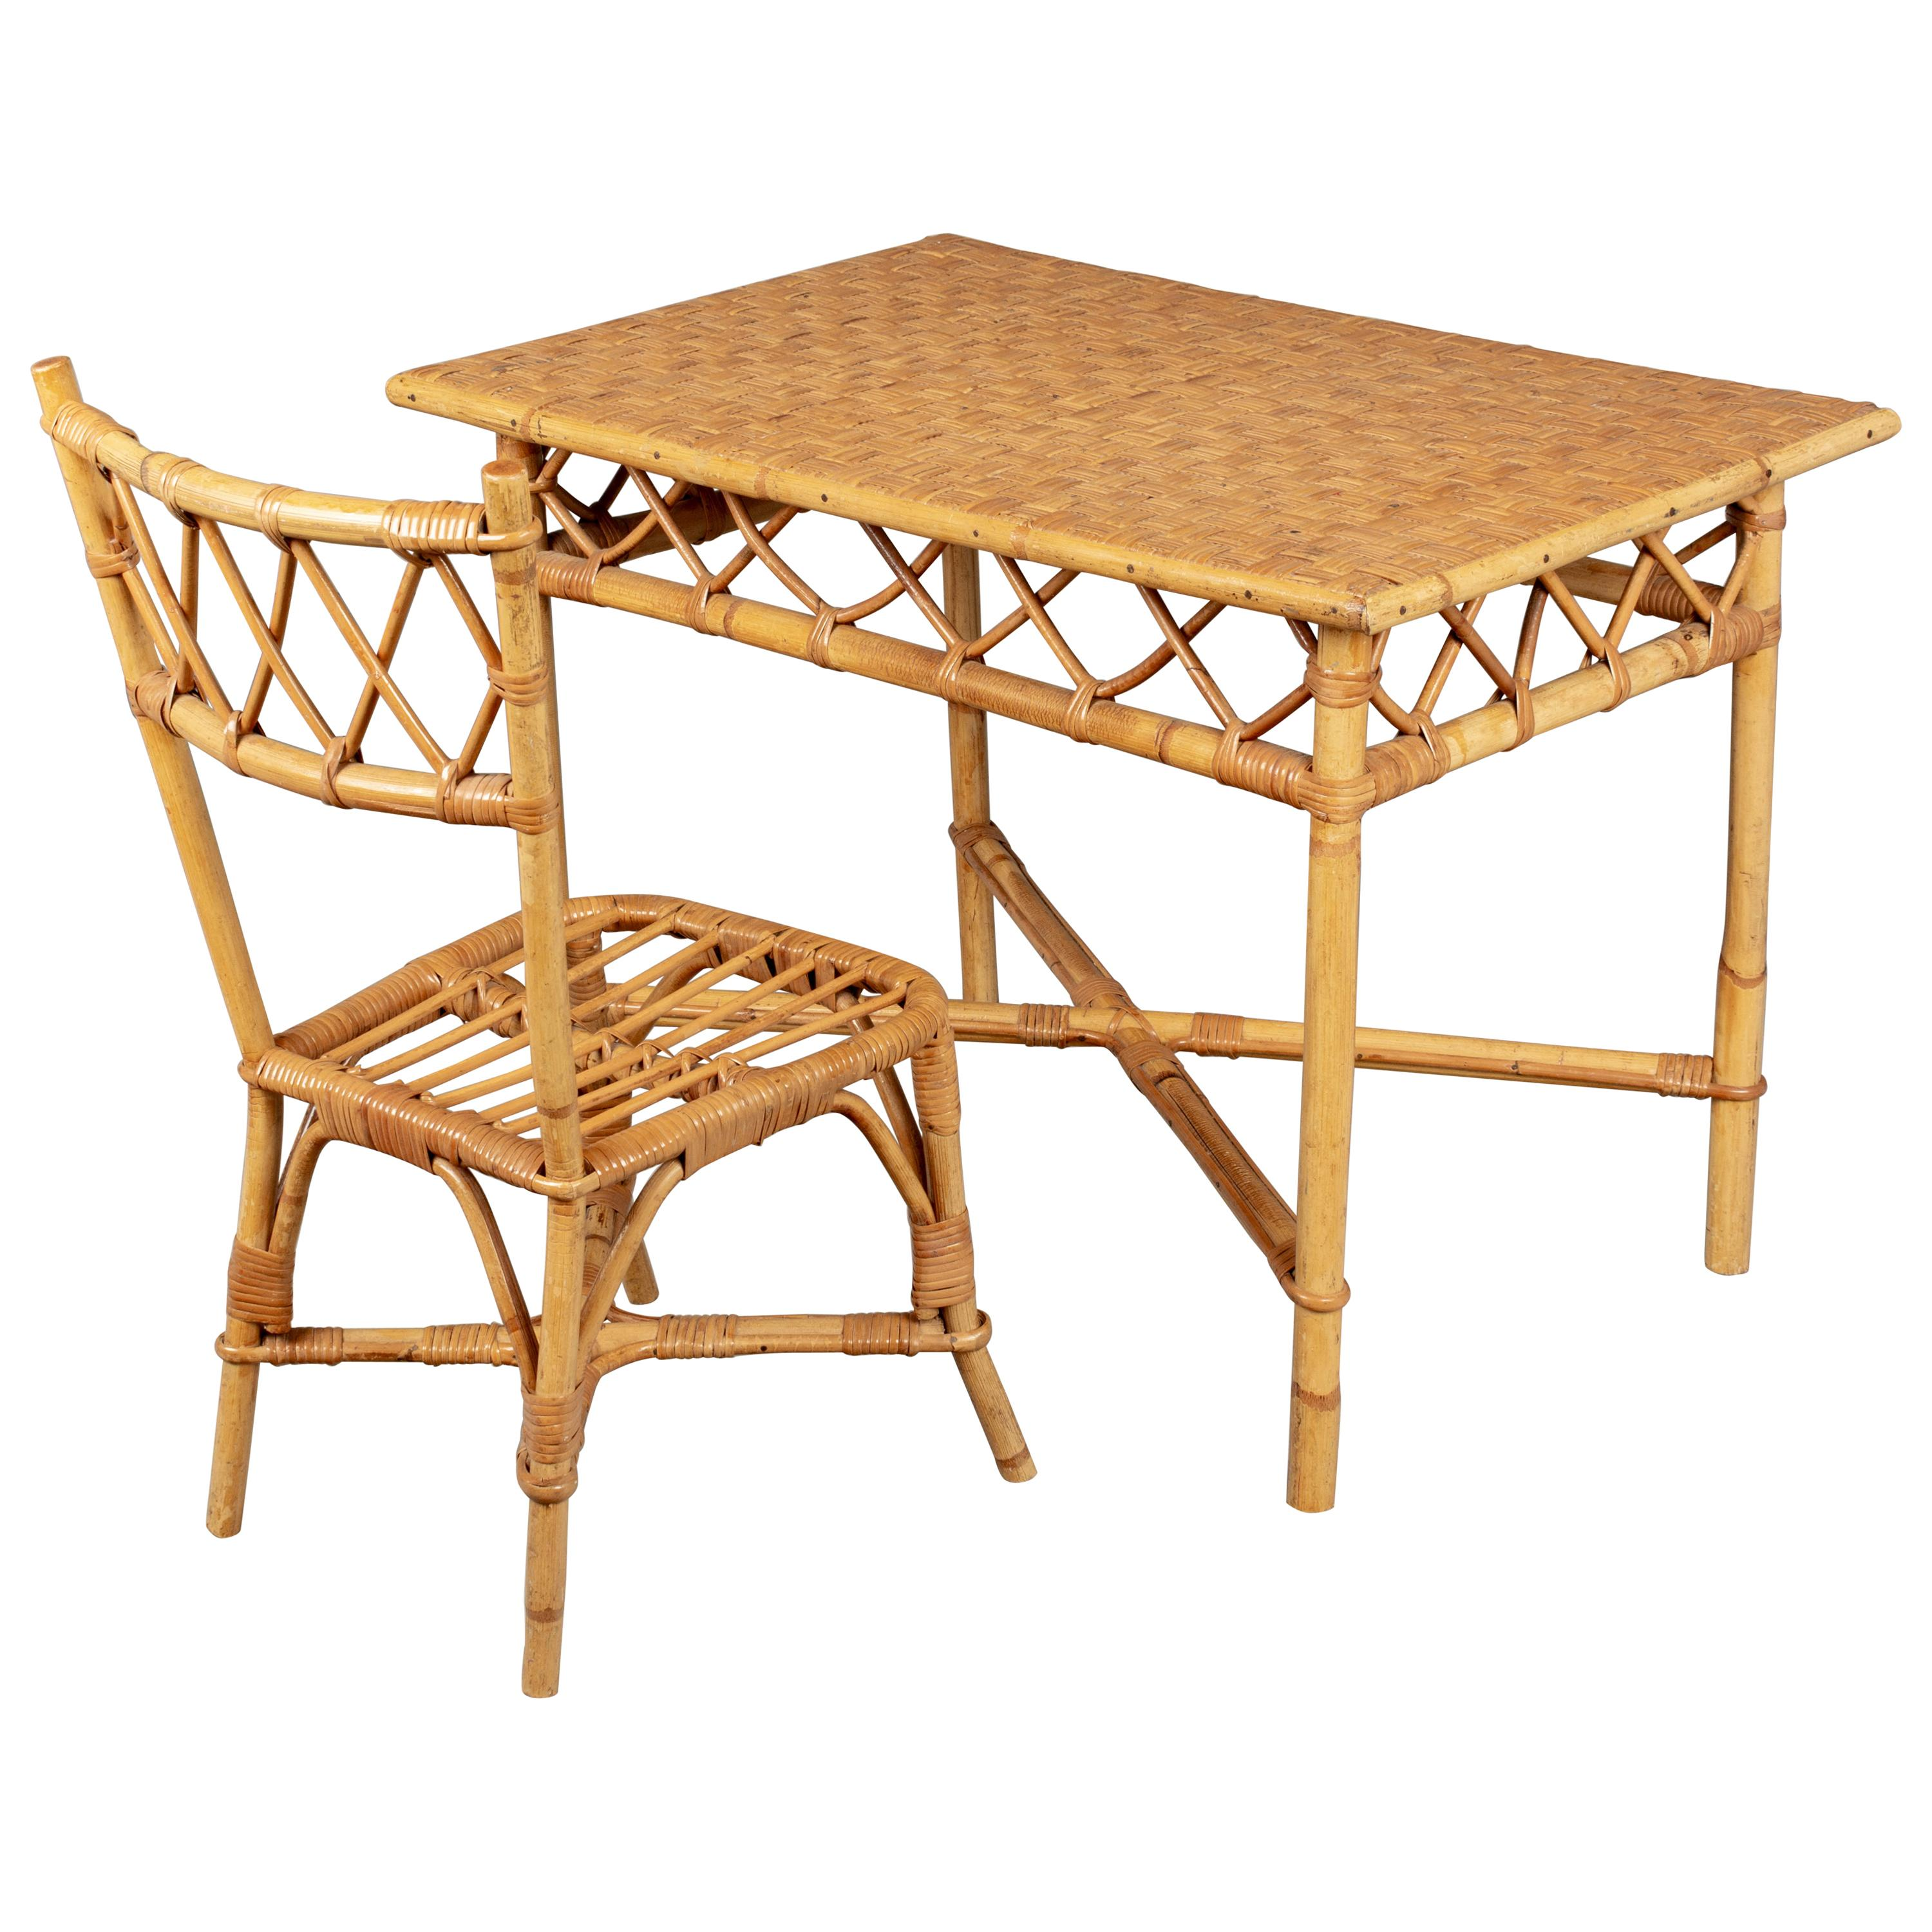 French Rattan Child's Desk and Chair Set